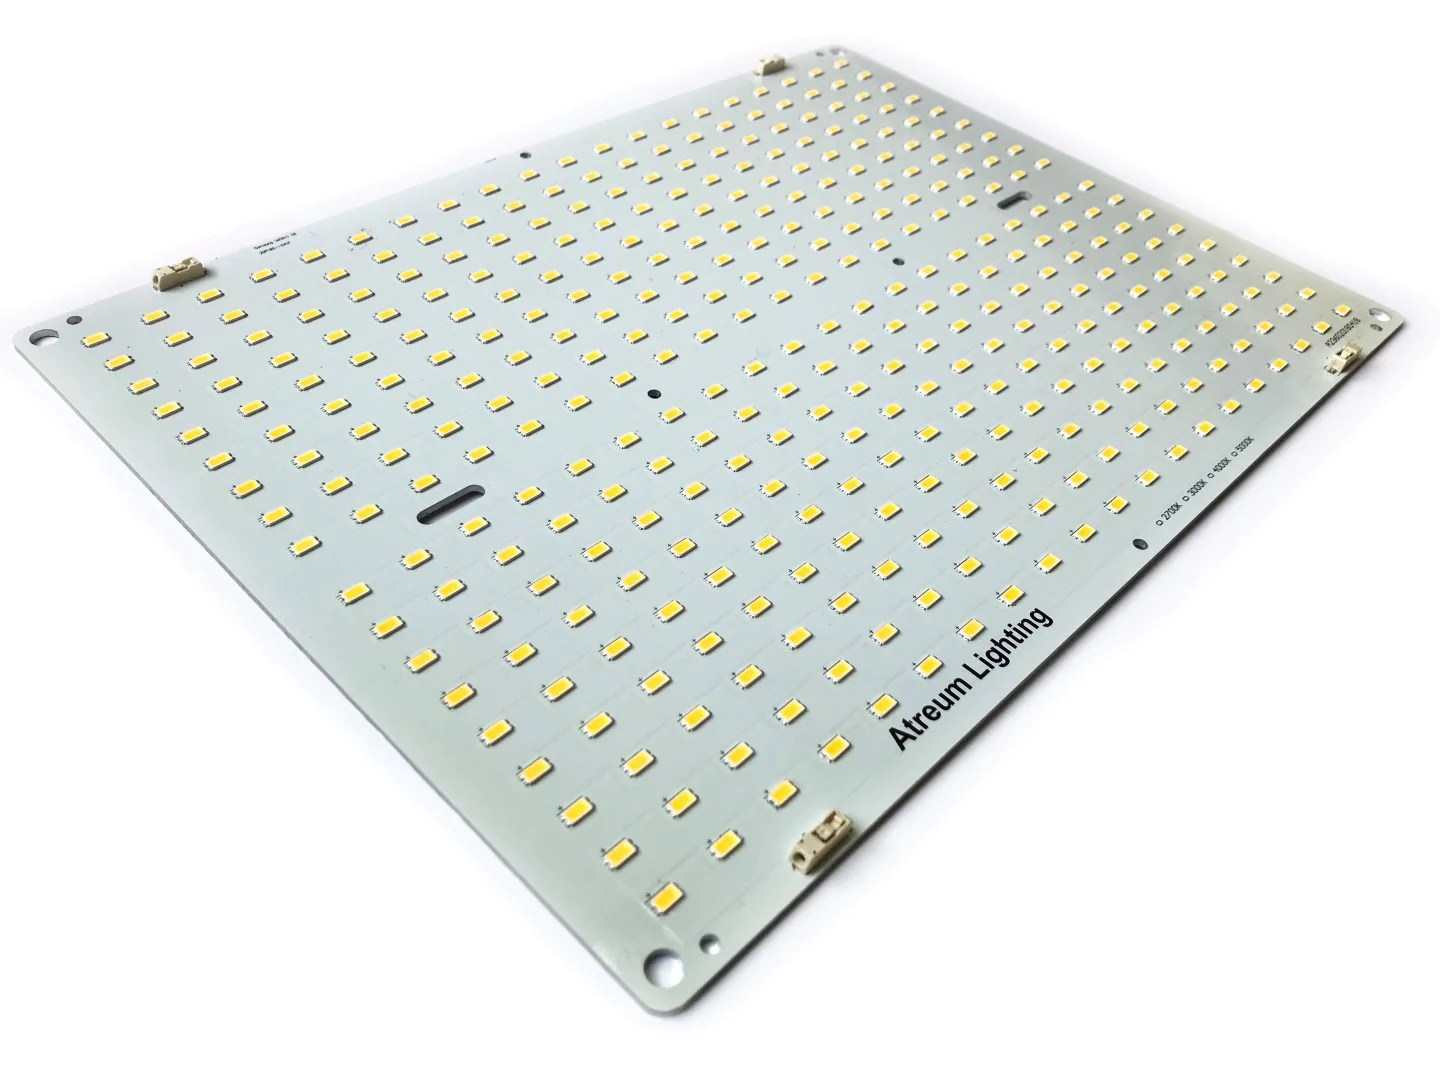 Diode Lighting Atreum Lighting Samsung Lm561c Led Board 360 Diode Full Spectrum Light